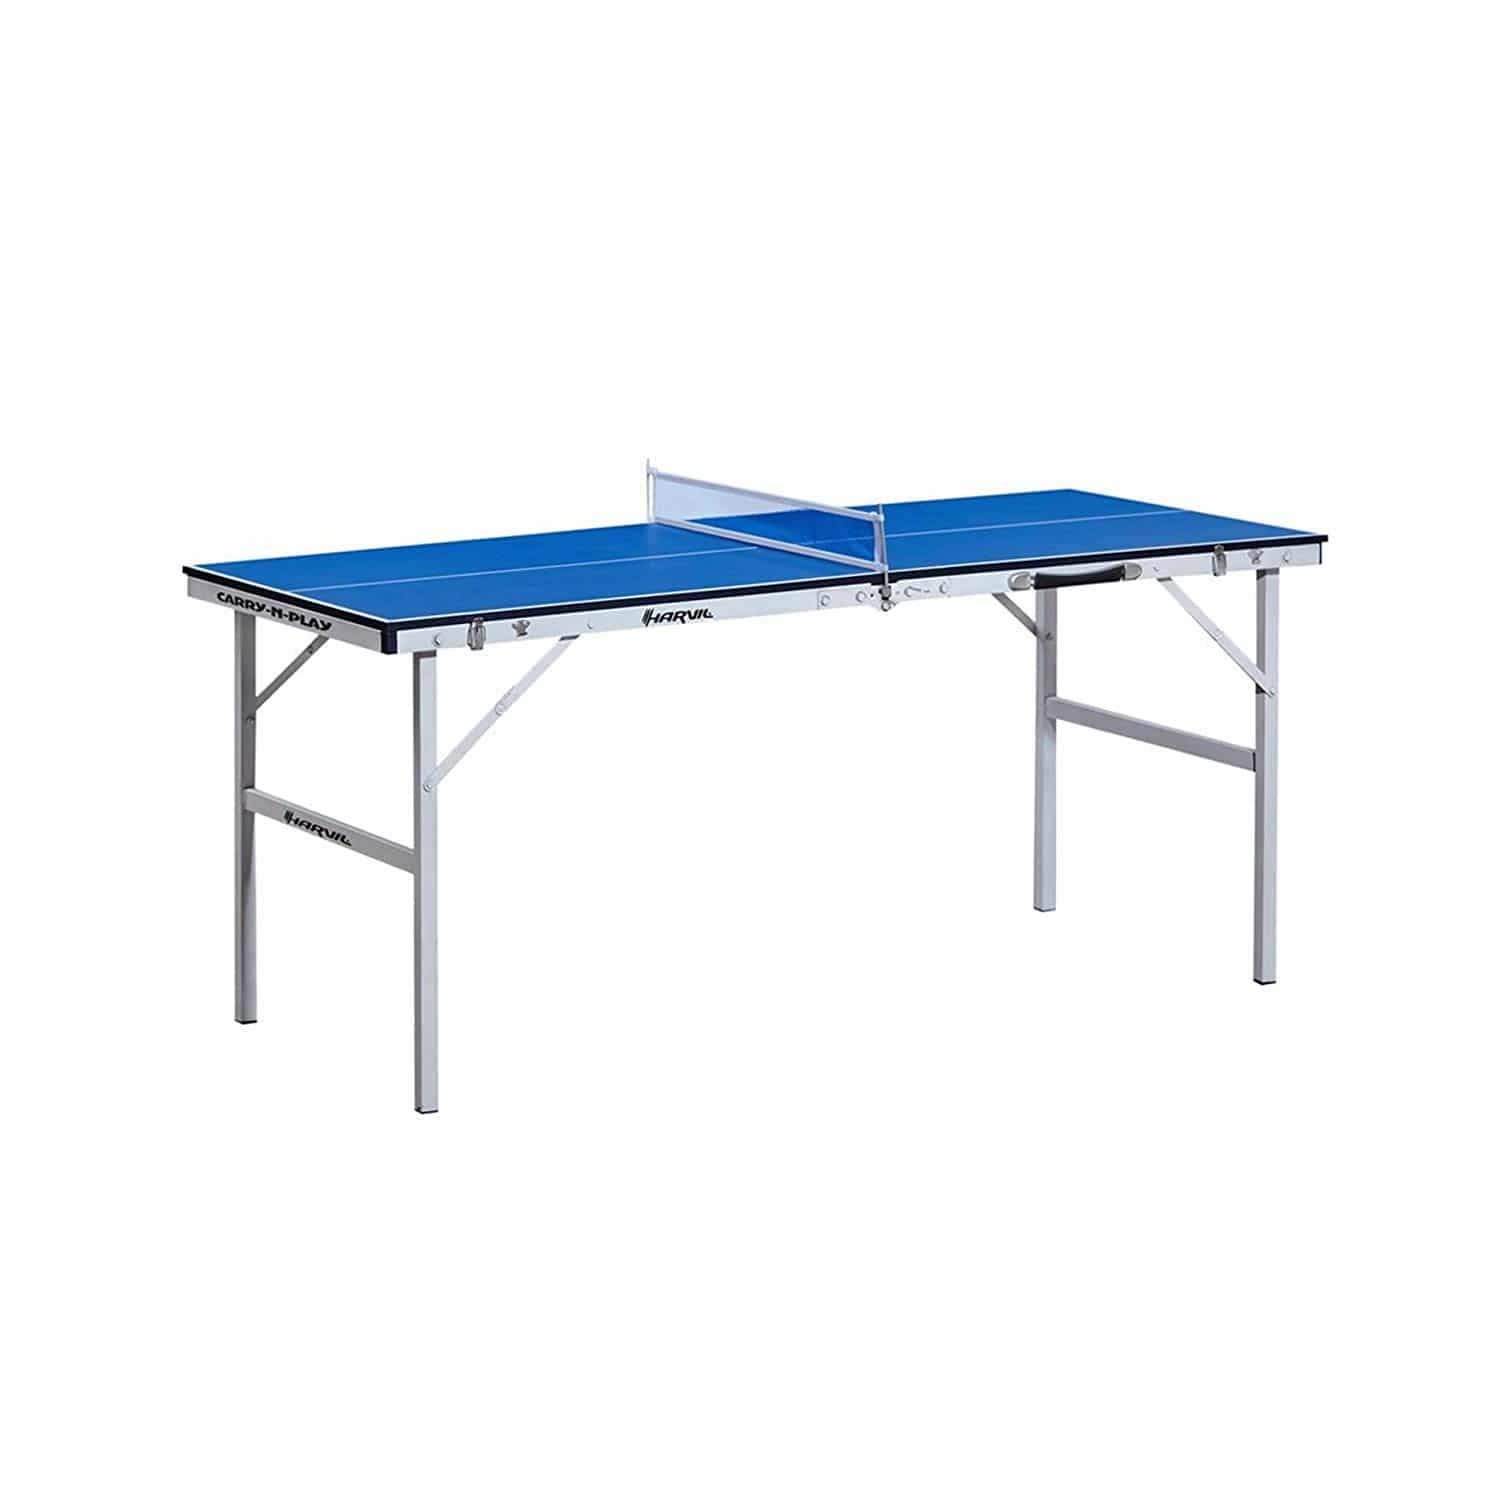 ee9dd1f4288 Harvil 60-Inch Folding Portable Table Tennis Table with FREE Accessories